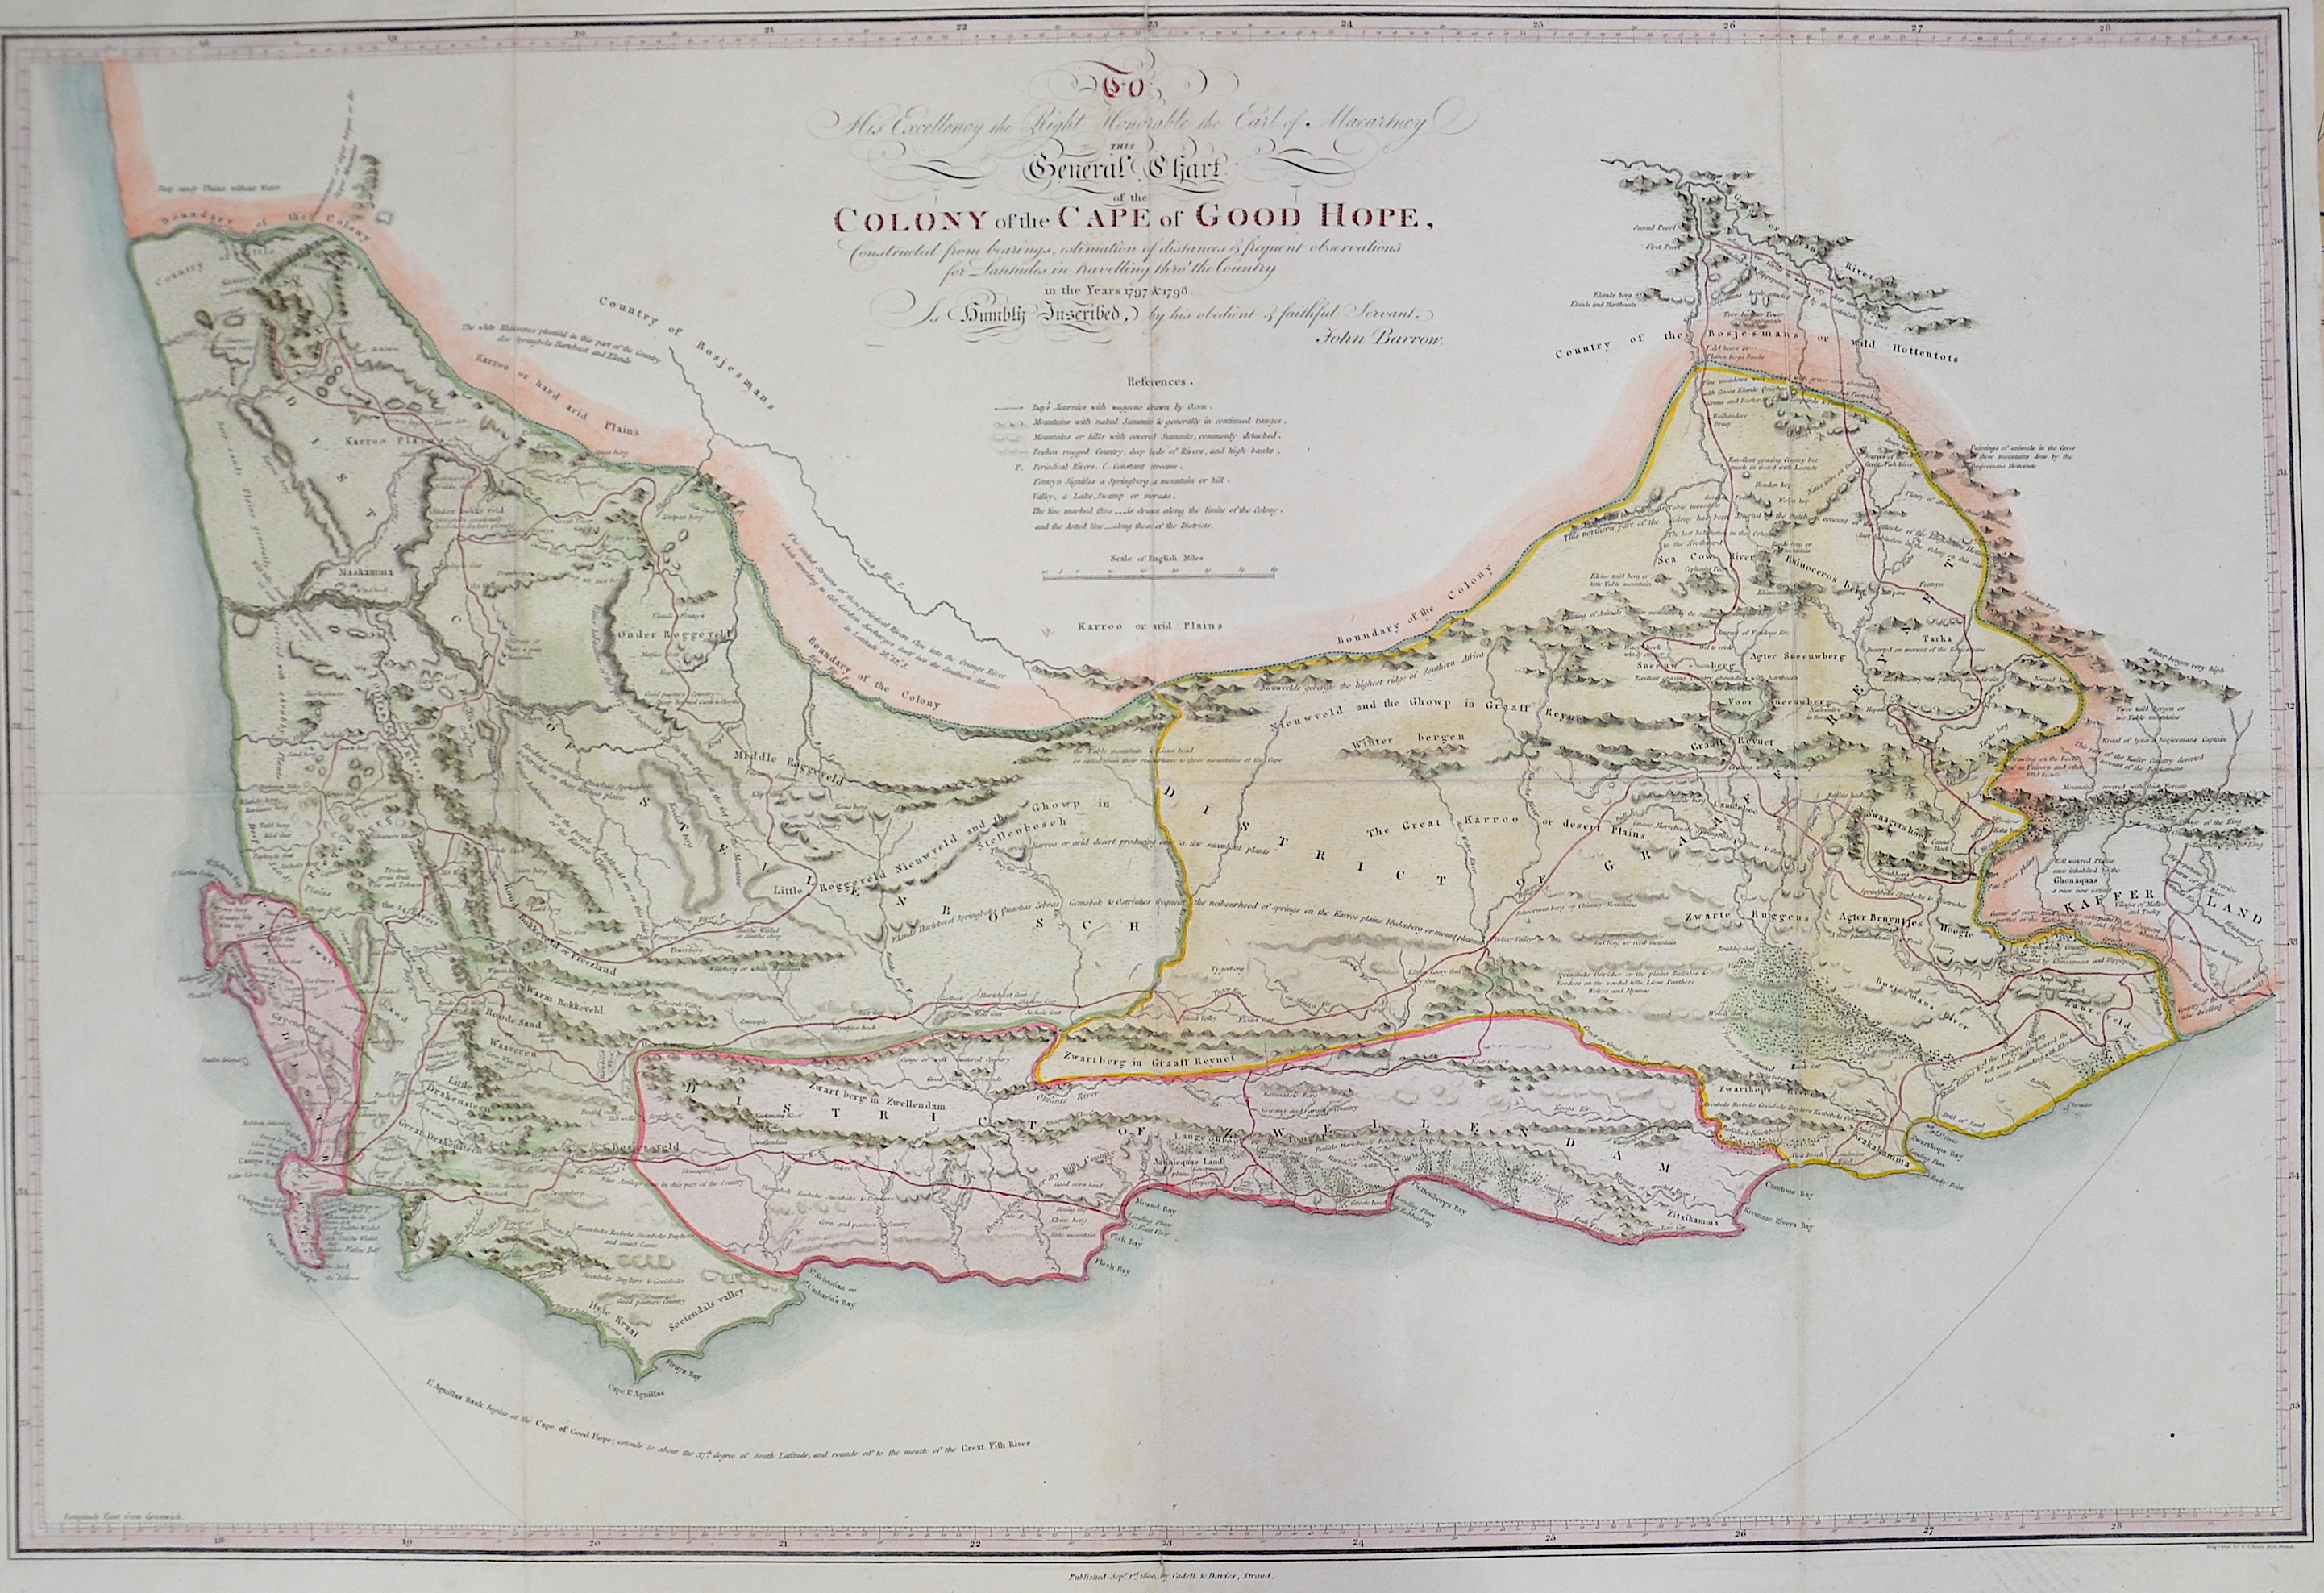 Barrow  General Chart colony of the cape of good hope